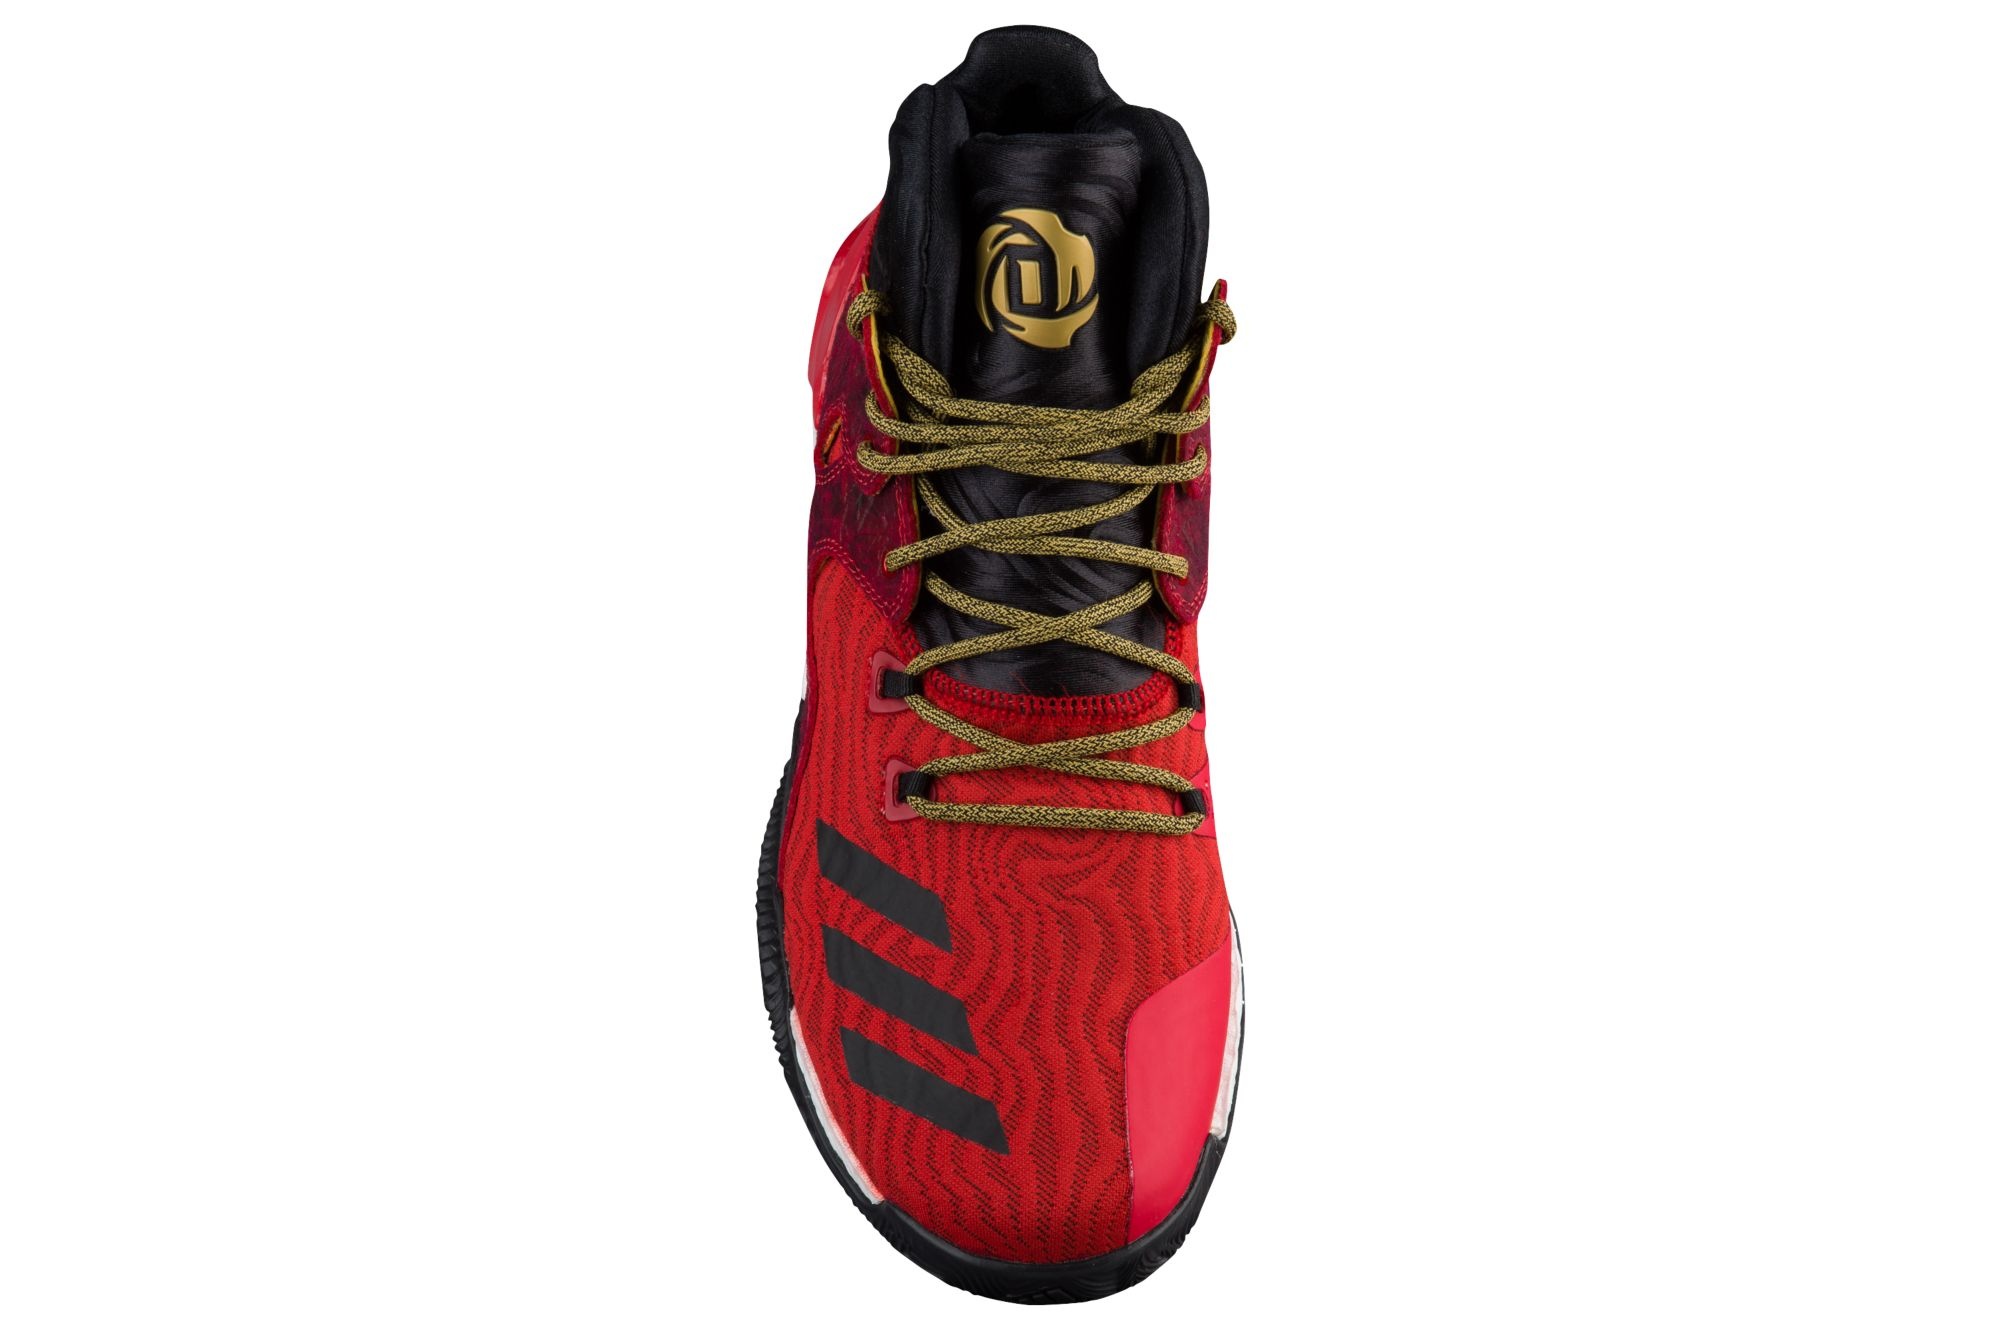 A New adidas D Rose 7 Colorway for April - WearTesters